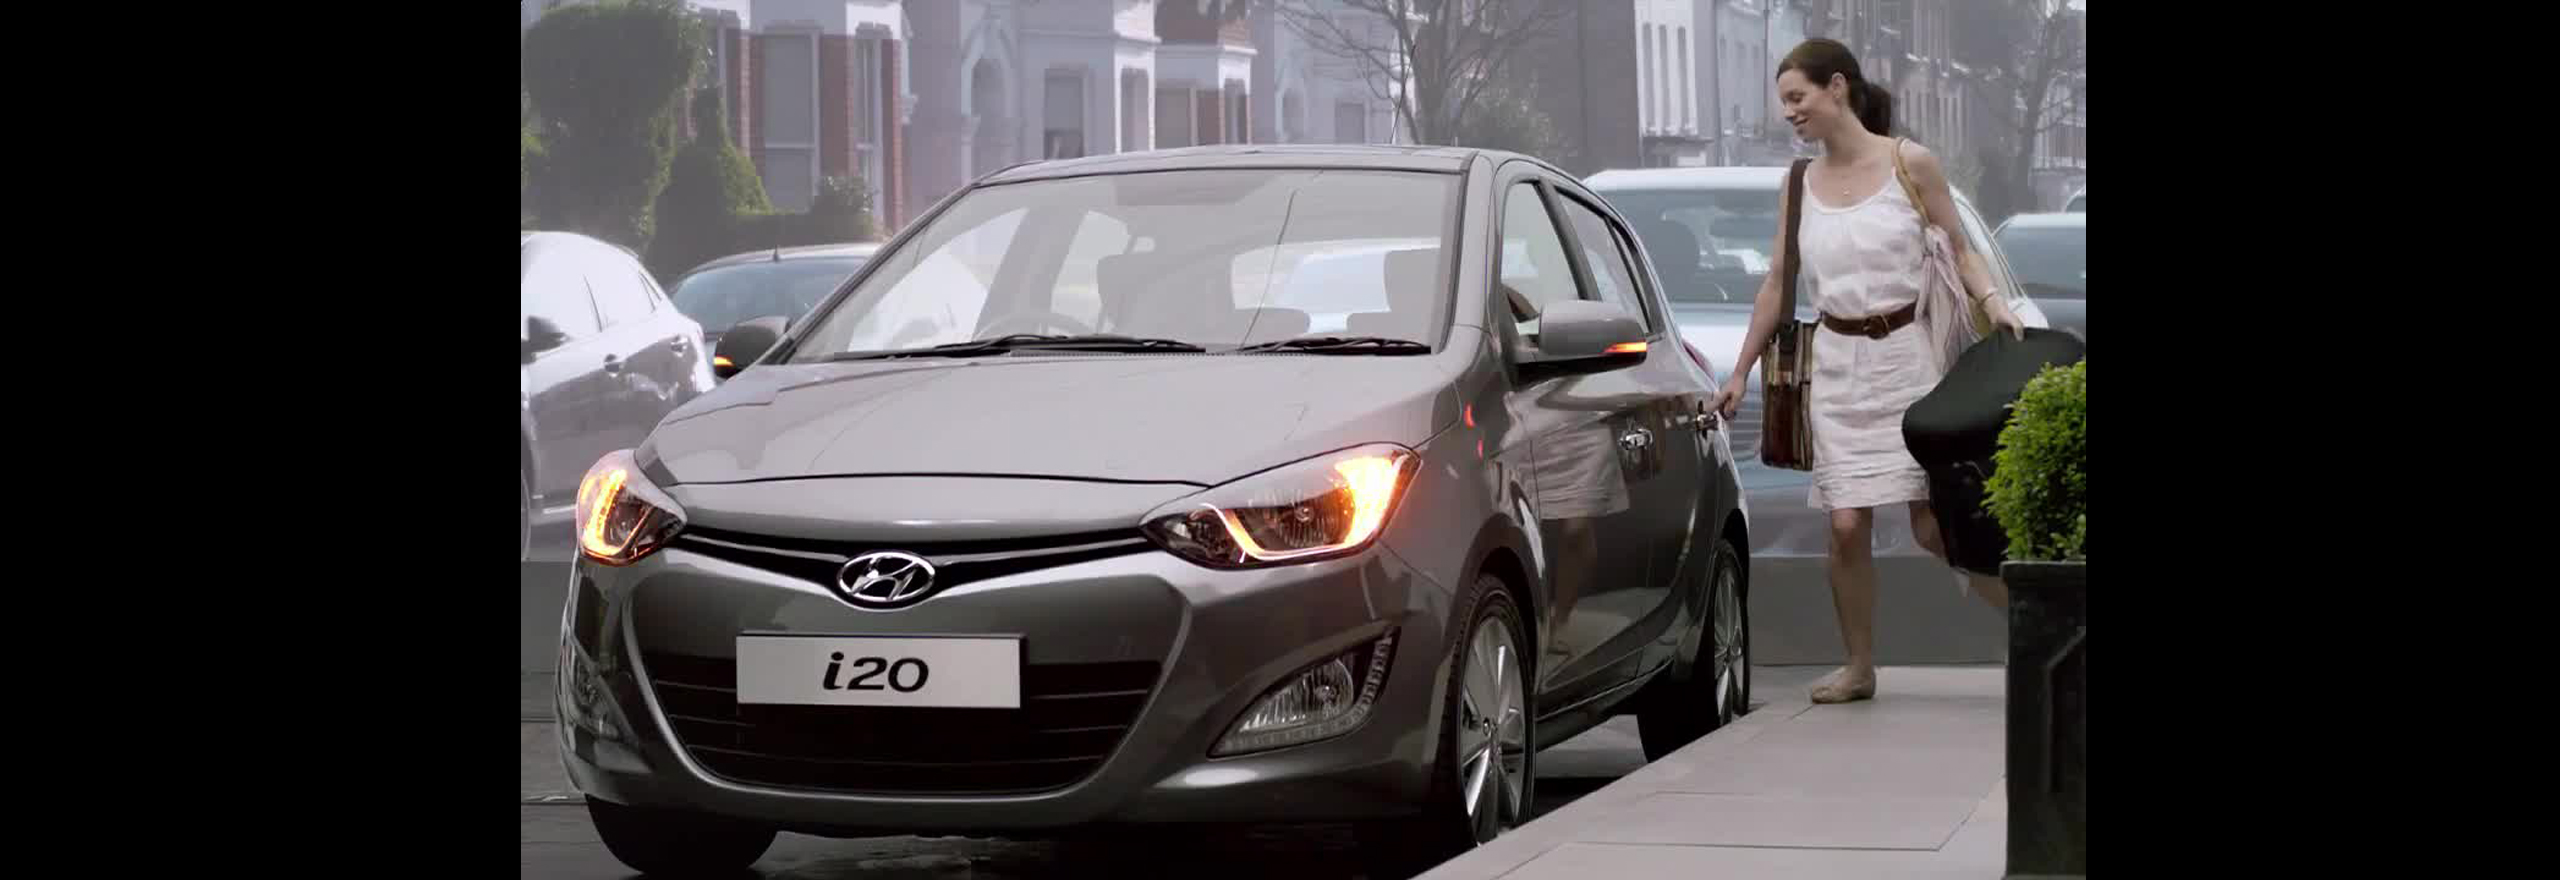 Hyundai i20 TV commercial